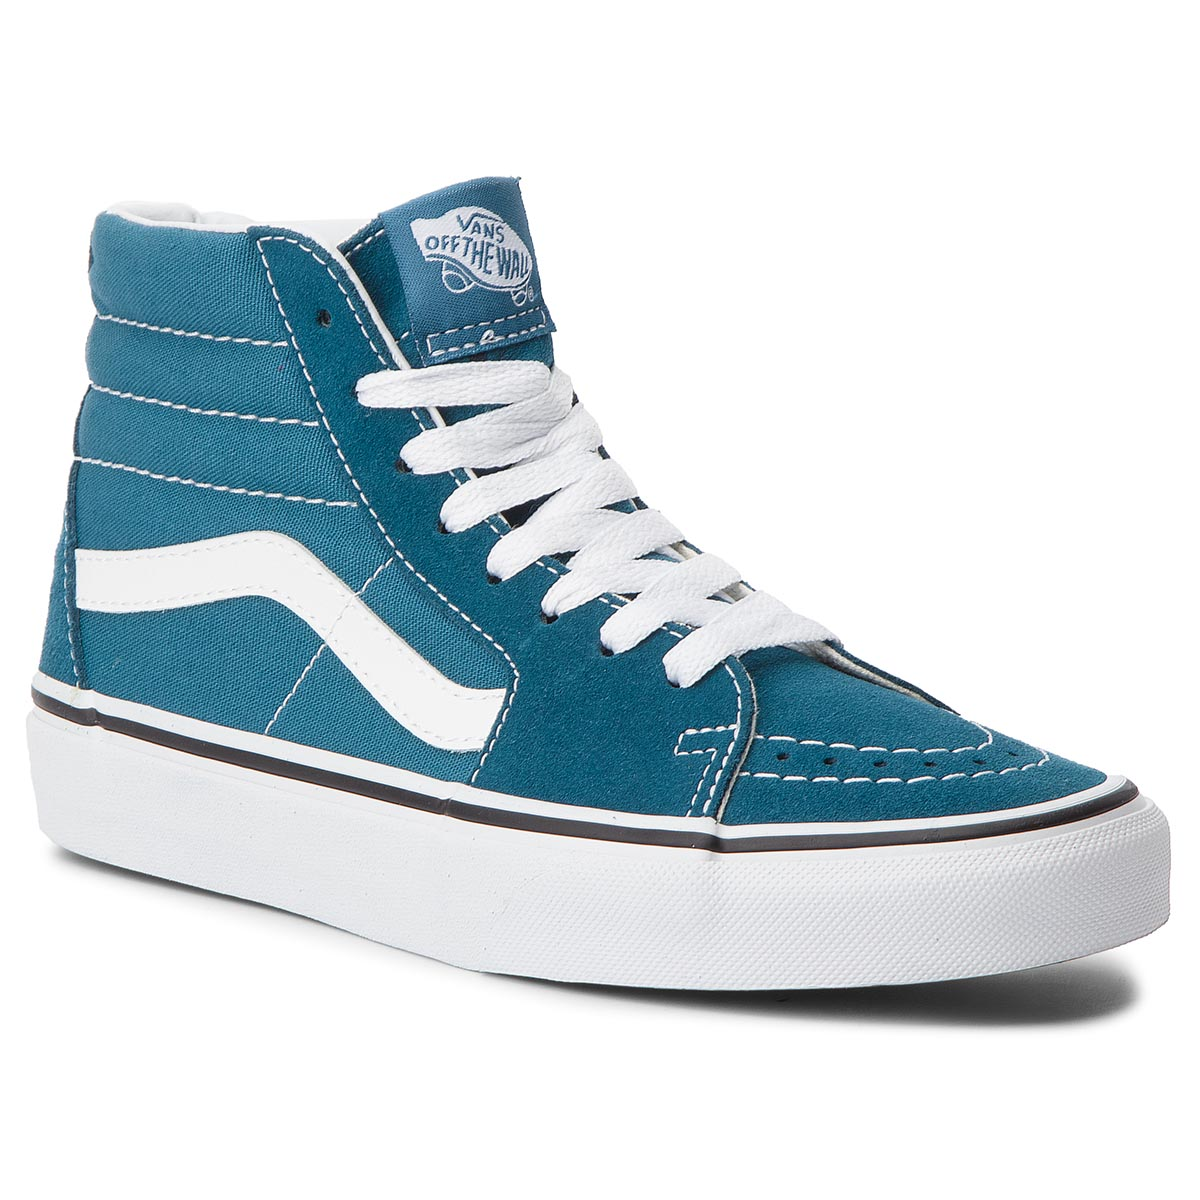 Sneakersy VANS - Sk8-Hi VN0A38GEU60  Corsair/True White